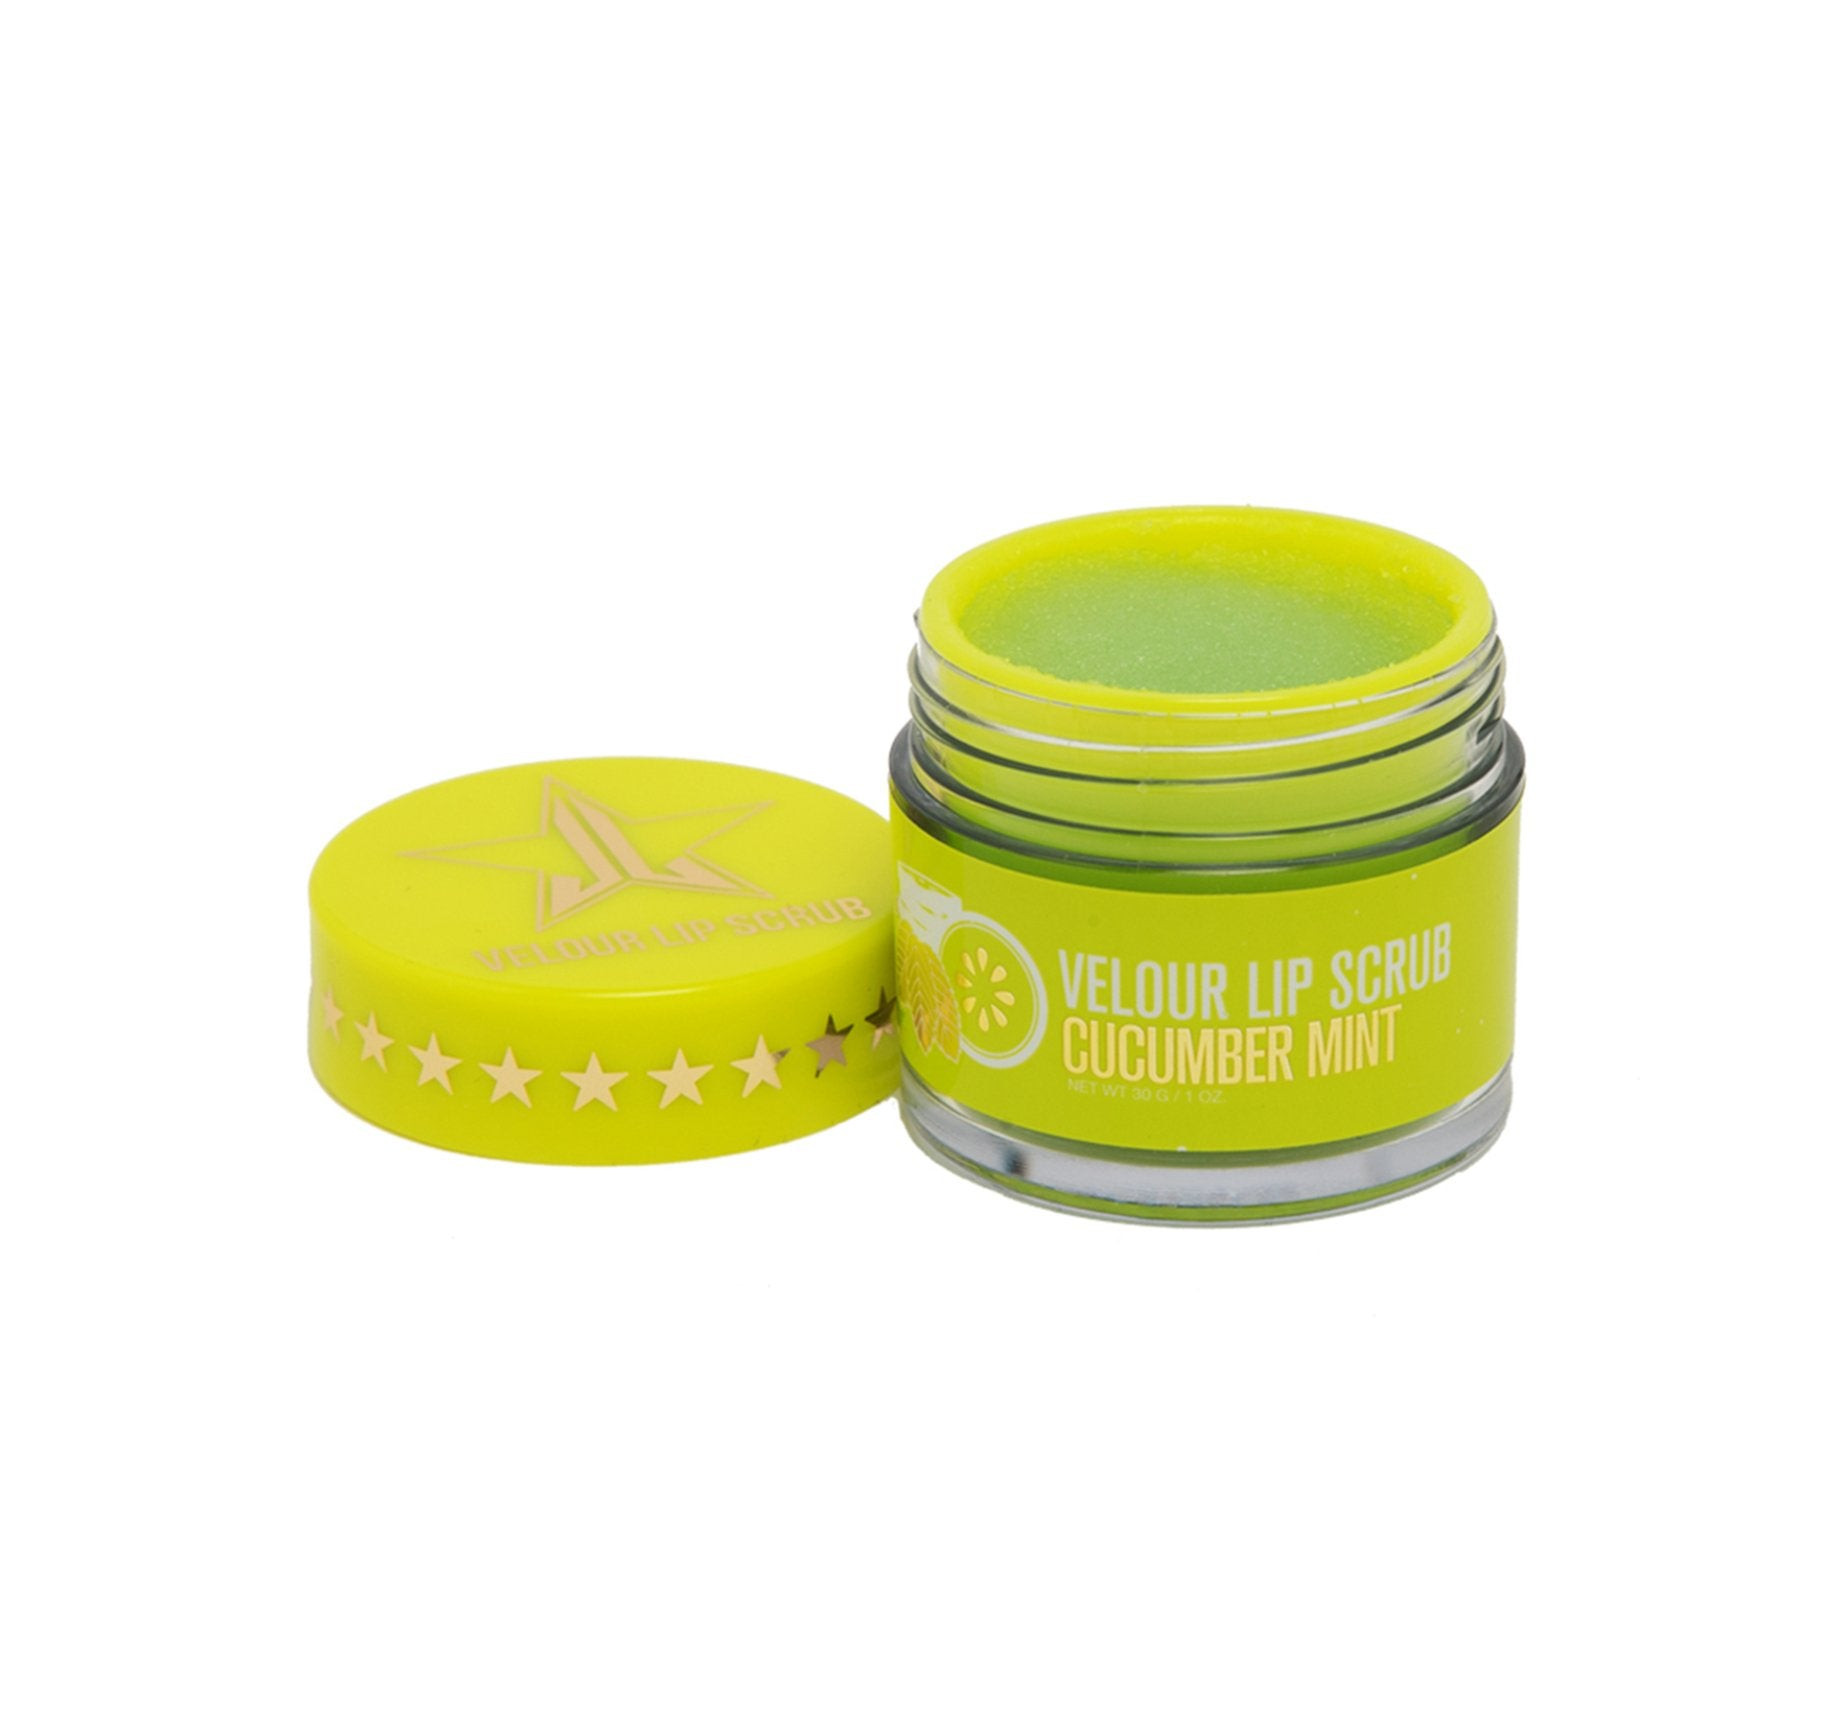 VELOUR LIP SCRUB - CUCUMBER MINT, view larger image